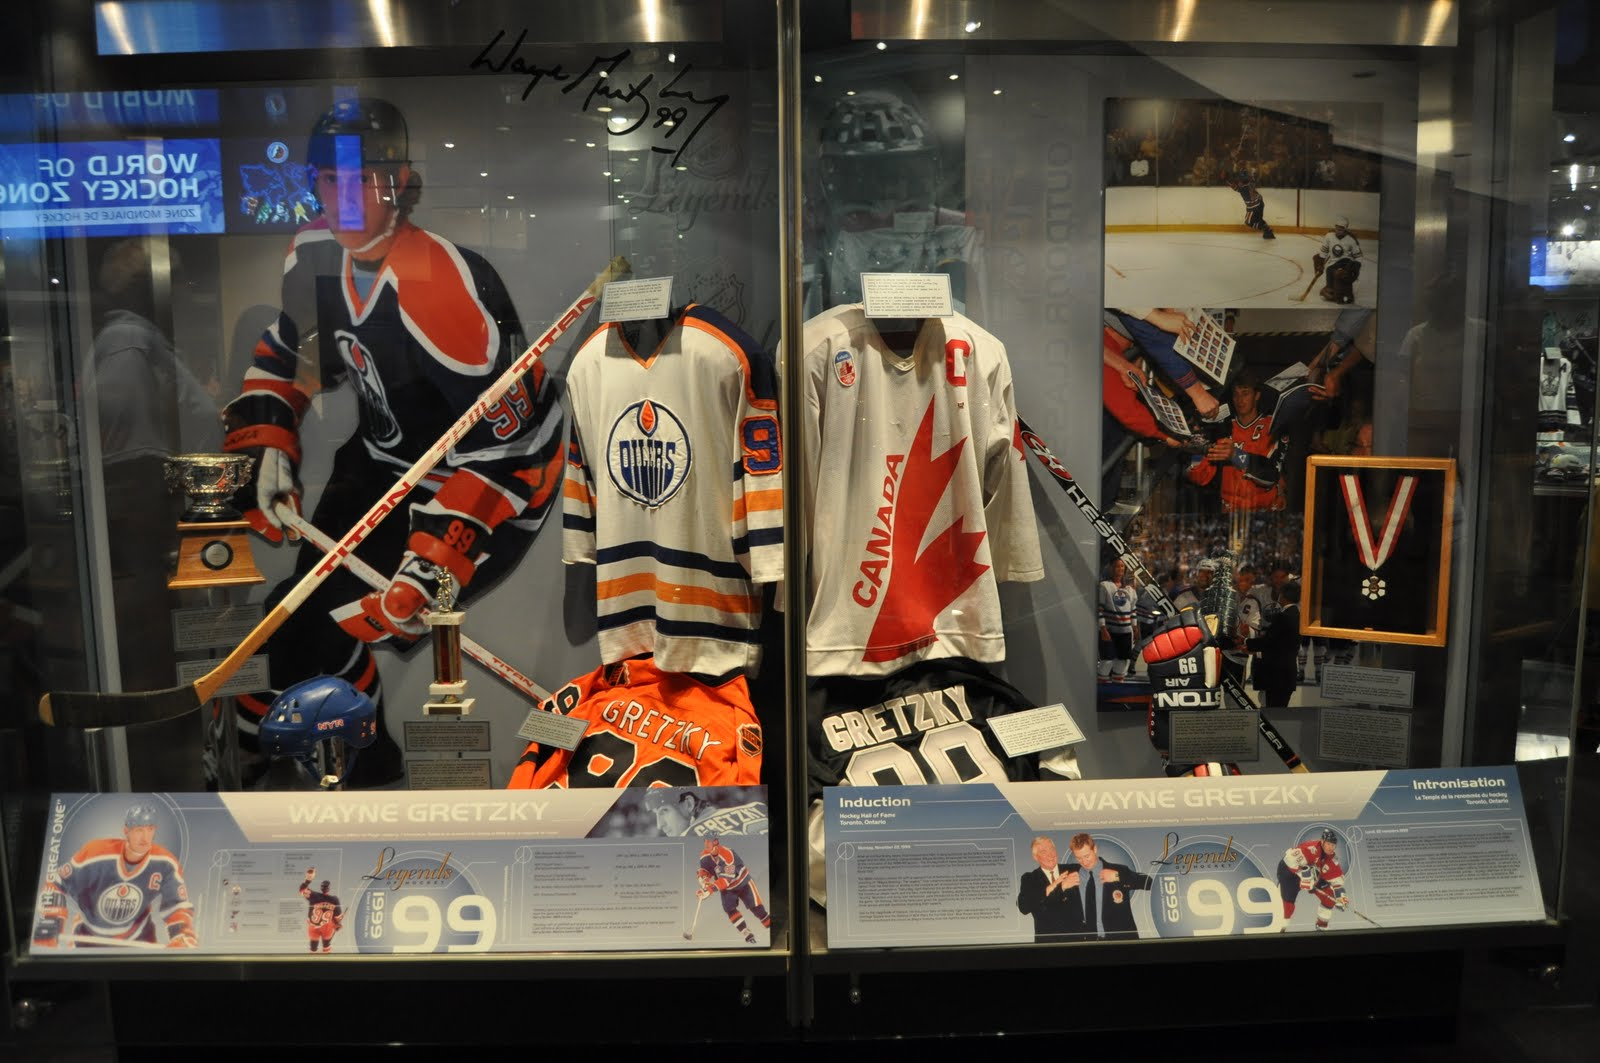 wayne gretzky descriptive essay Biography of wayne gretzky 3 pages 738 words april 2015 saved essays save your essays here so you can locate them quickly.